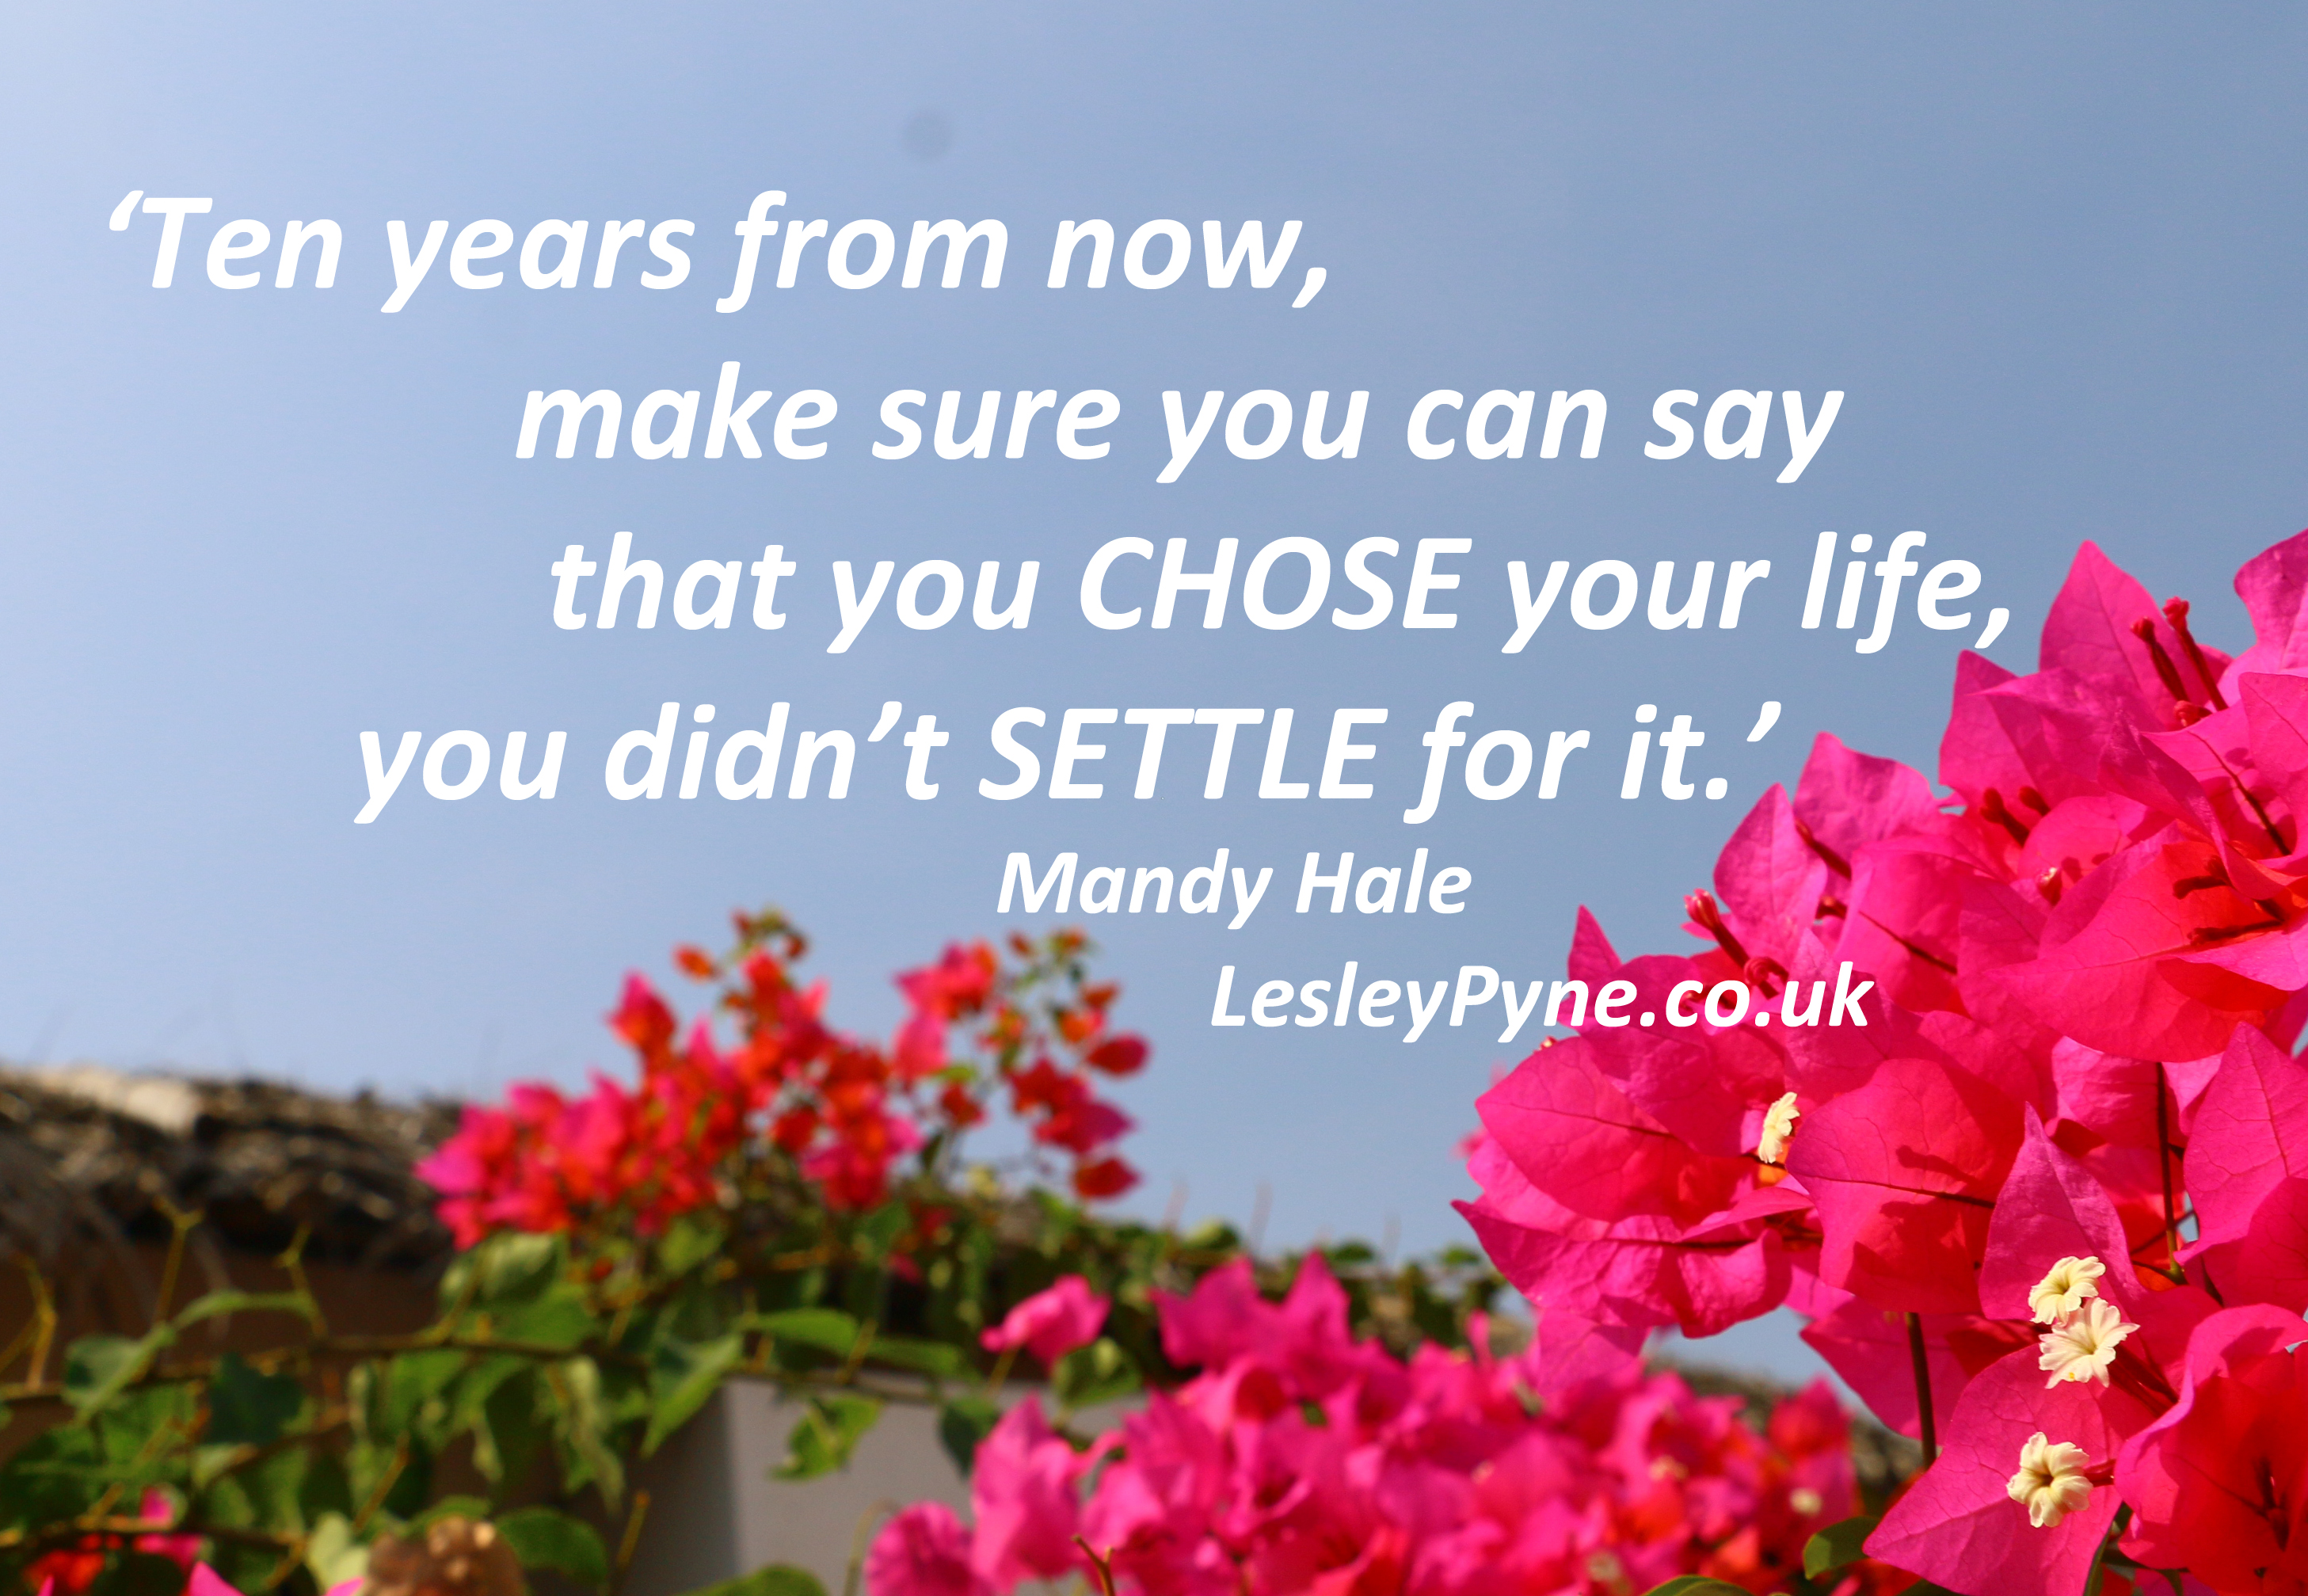 What are you settling for?